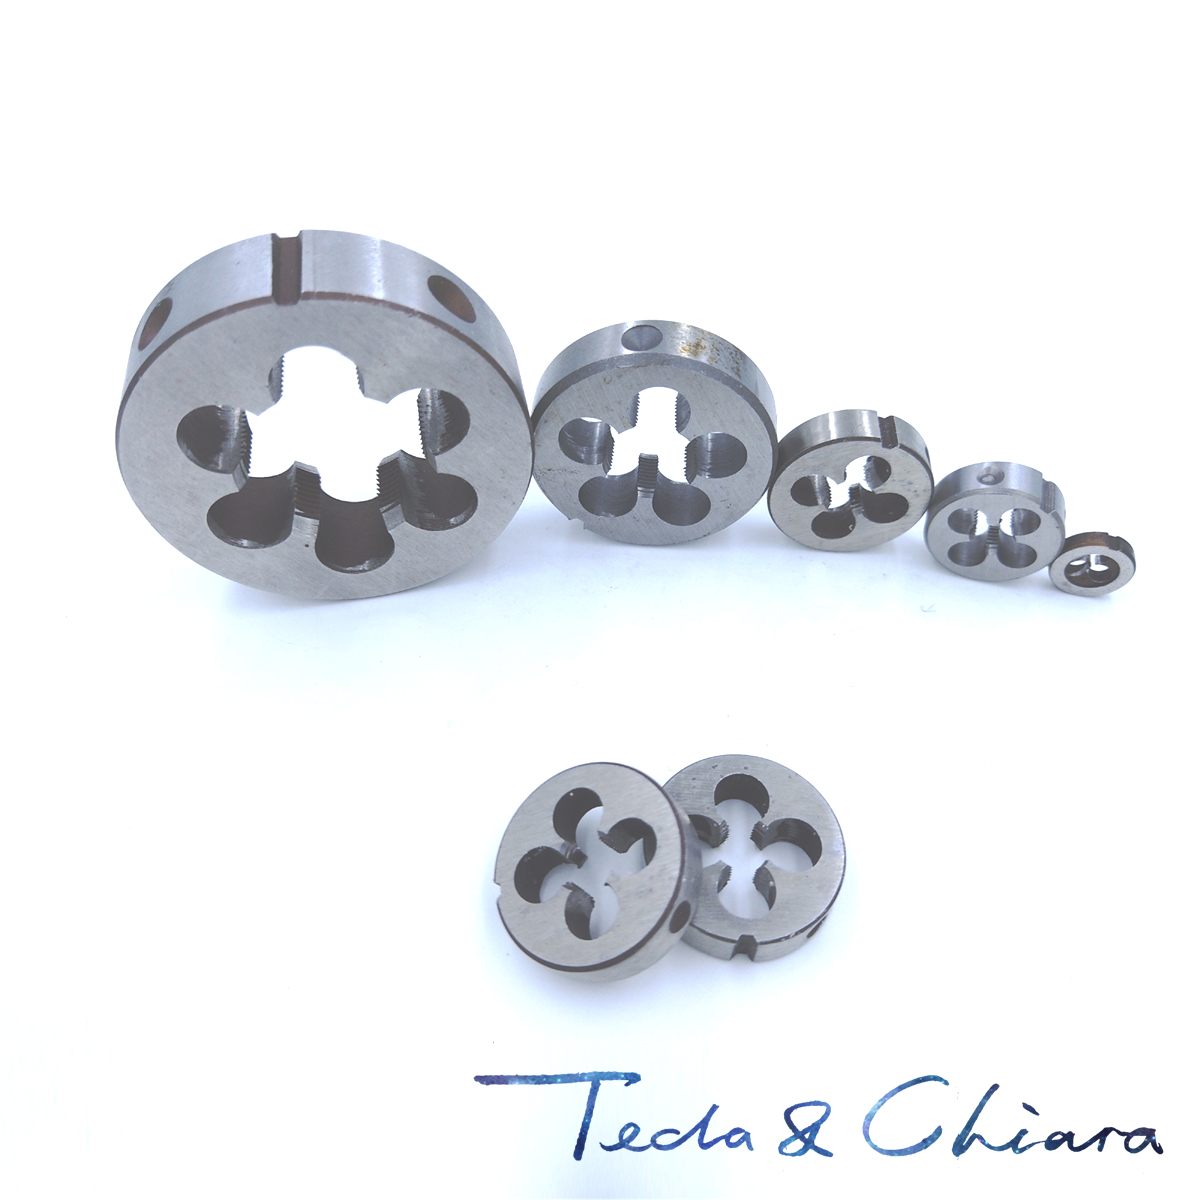 3/8-28 3/8-32 3/8-36 3/8-40 UN UNEF UNS Right Hand Die TPI Threading Tools For Mold Machining 3/8 3/8